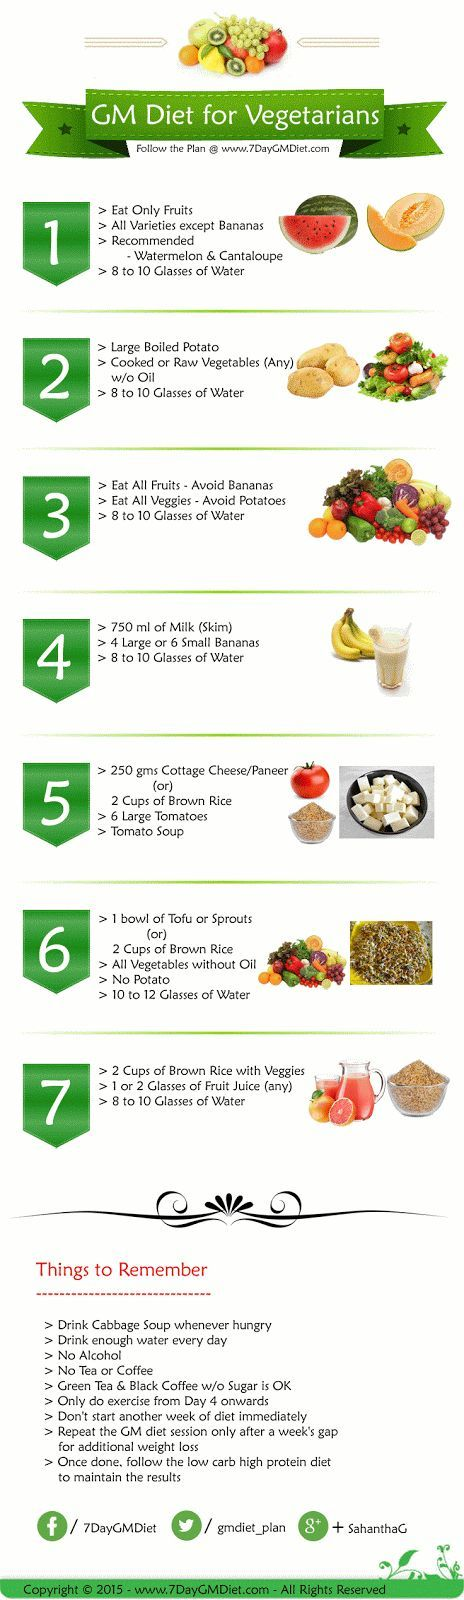 Gm Diet Plan Is The Fastest And Best Way To Reduce Weight A Study States That The Gm Diet Plan Is Effective A General Motors Diet Gm Diet Plans Gm Diet